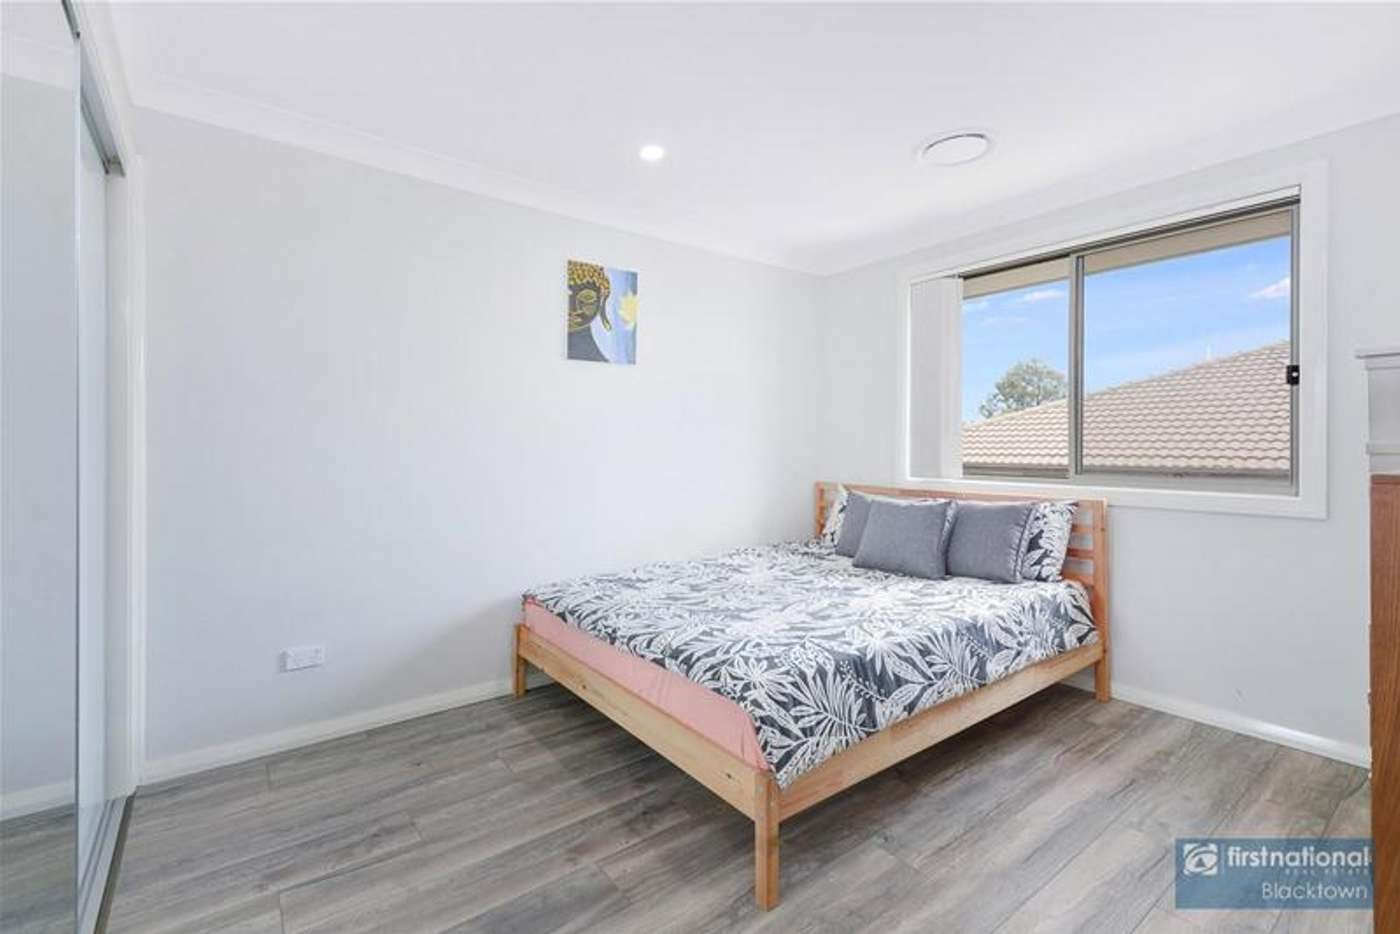 Sixth view of Homely townhouse listing, 40 Ludhiana Glade, Schofields NSW 2762